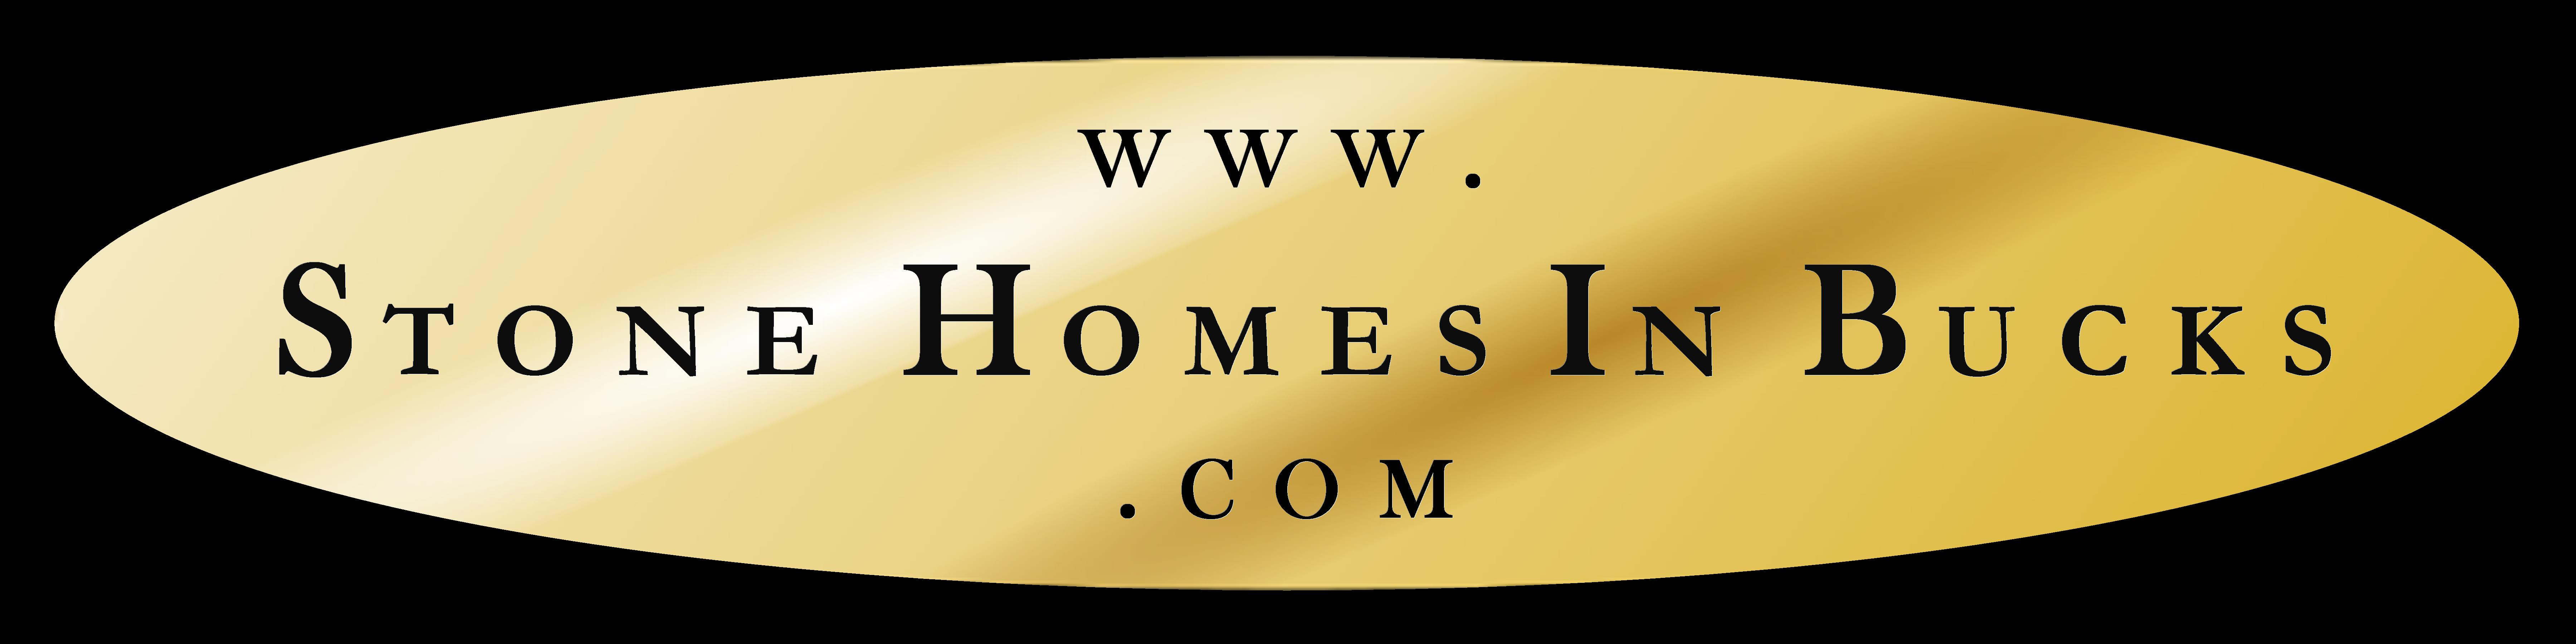 Stone Homes In Bucks | www.StoneHomesInBucks.com | Doylestown Realtor | Bucks County Country Property | Bucks County Property | #Doylestown | @Doylestown | #NewHopePA